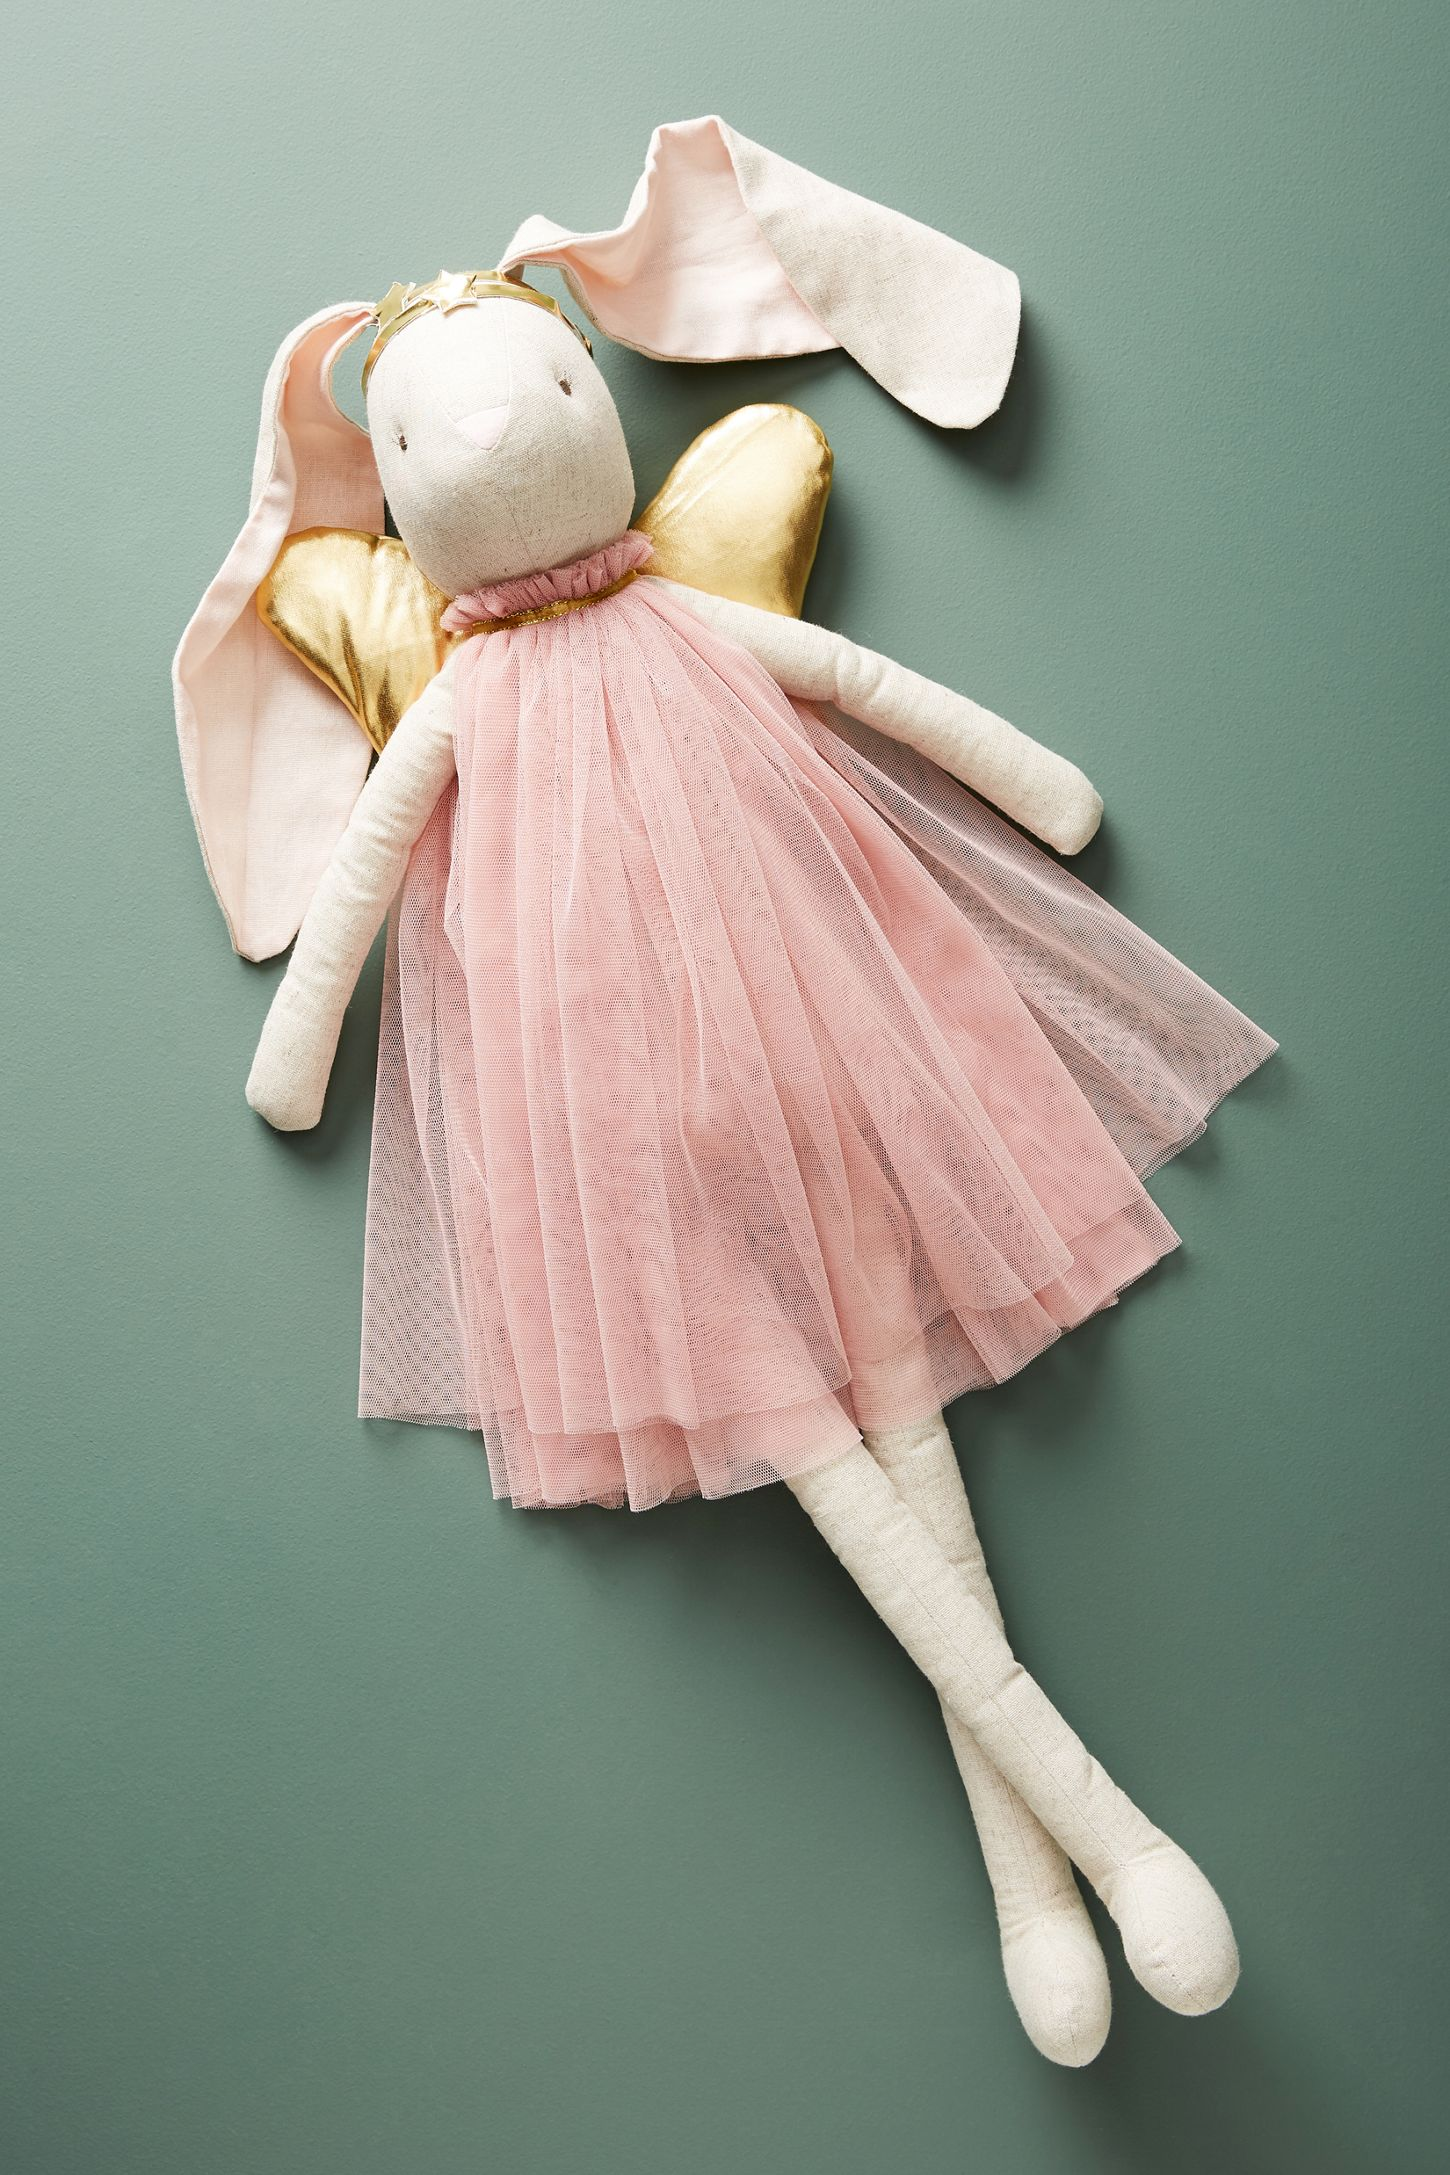 374b112a Winged Bunny Doll   Anthropologie